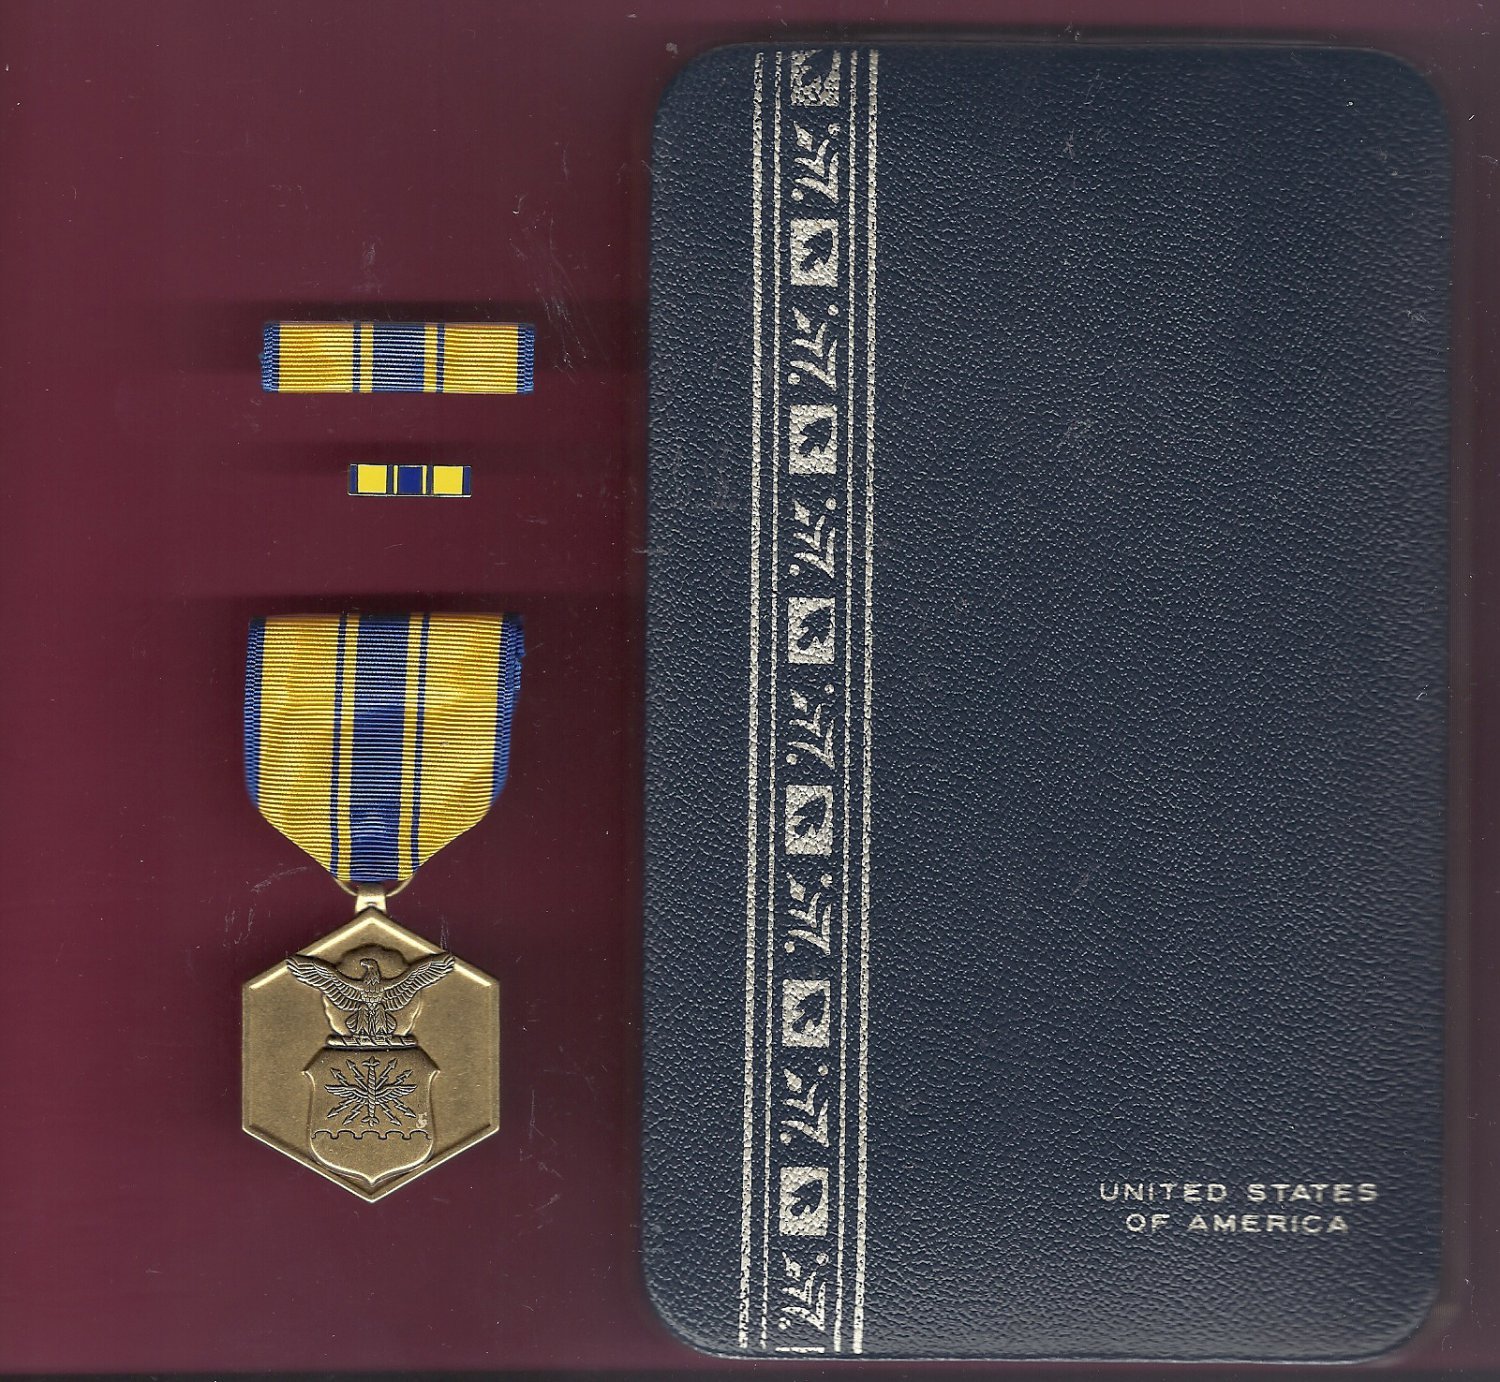 USAF Air Force Commendation medal in case with ribbon bar and lapel pin